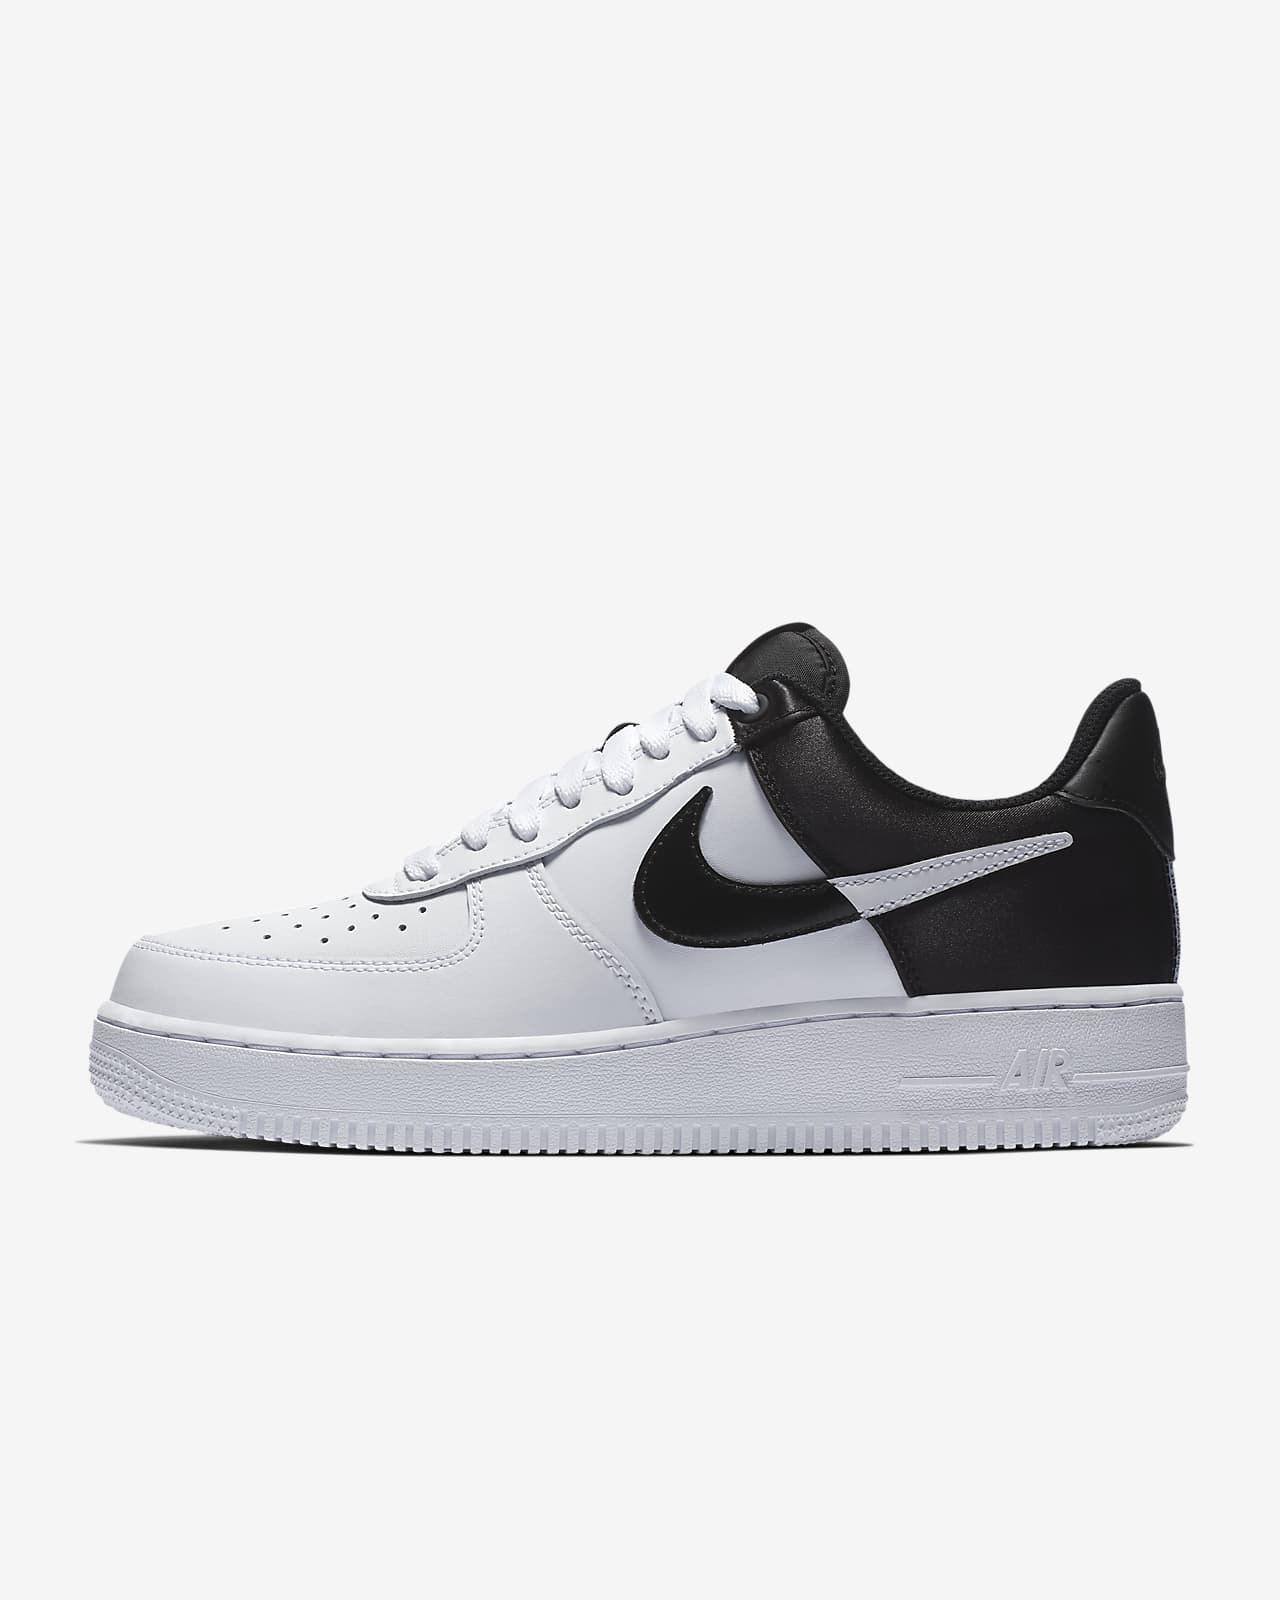 air force 1 nba bianche